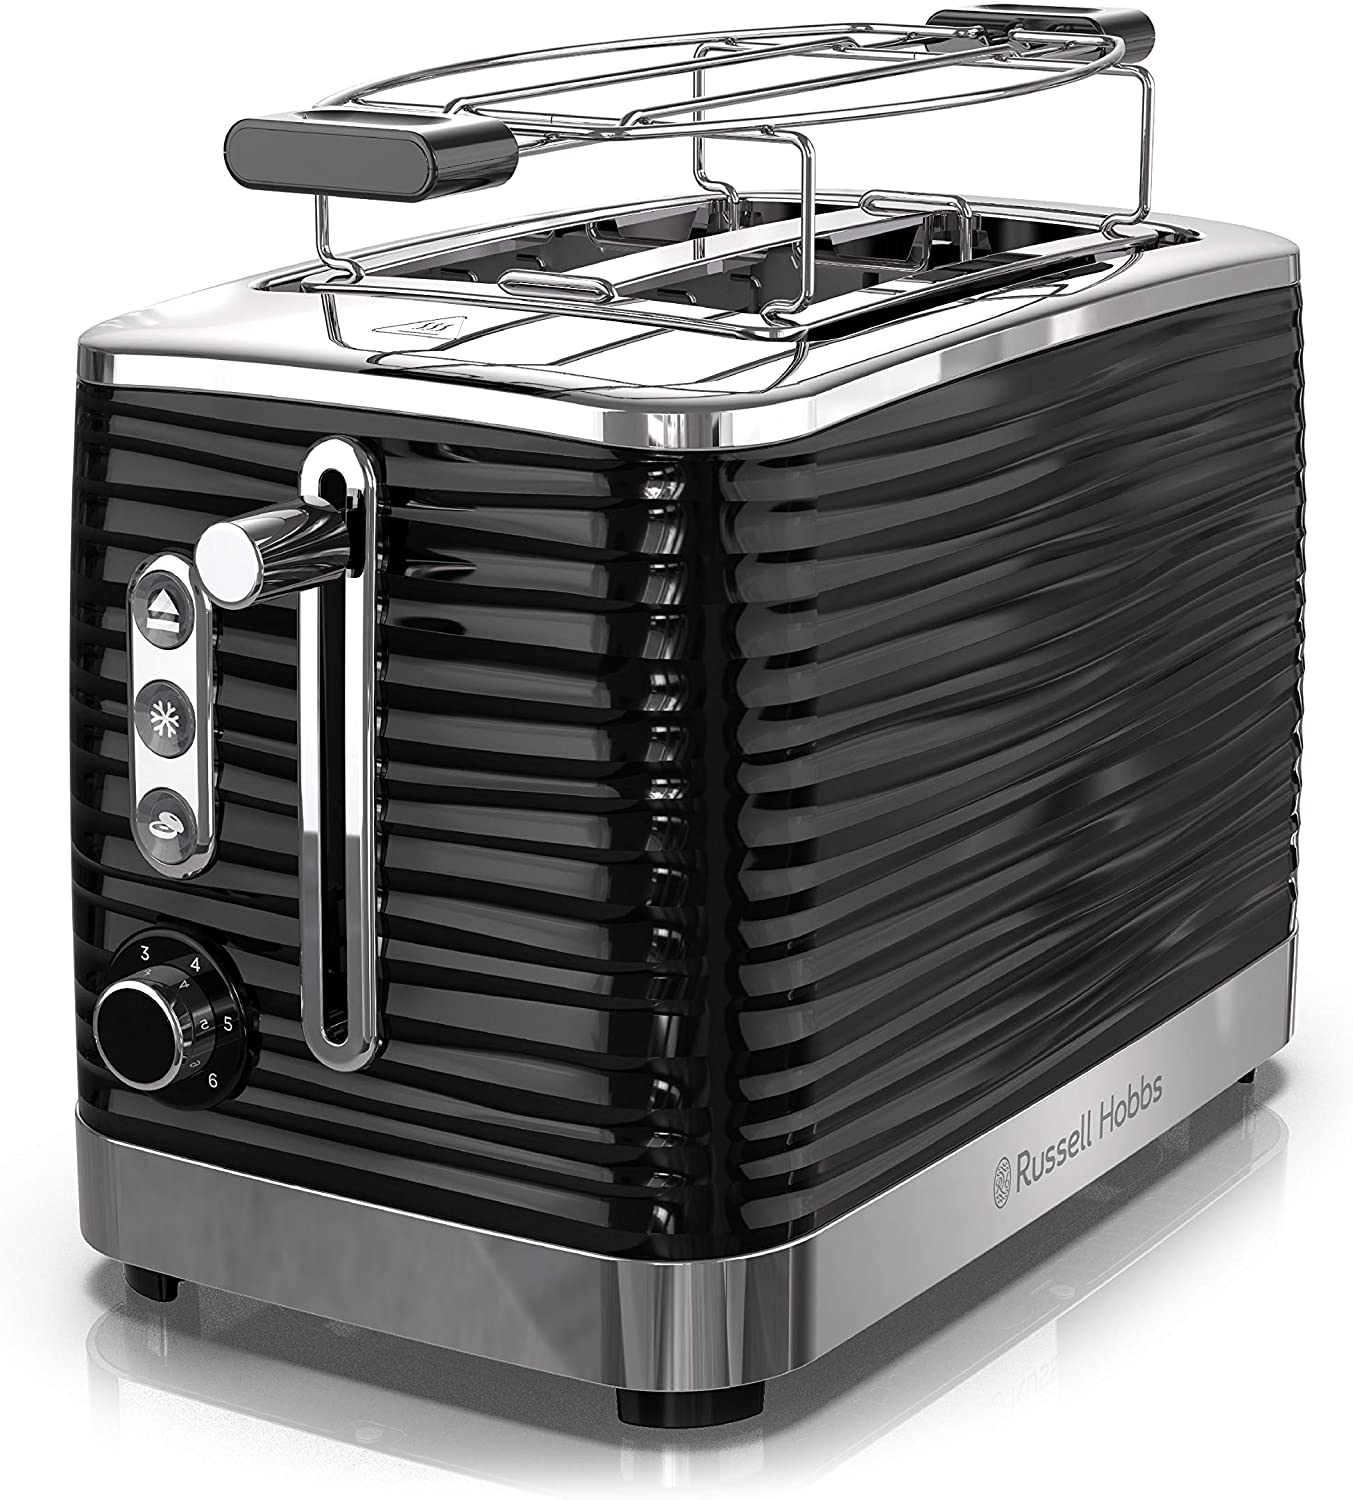 Russell Hobbs TR9350BR Coventry 2-Slice Toaster, Included Warming Rack, Black